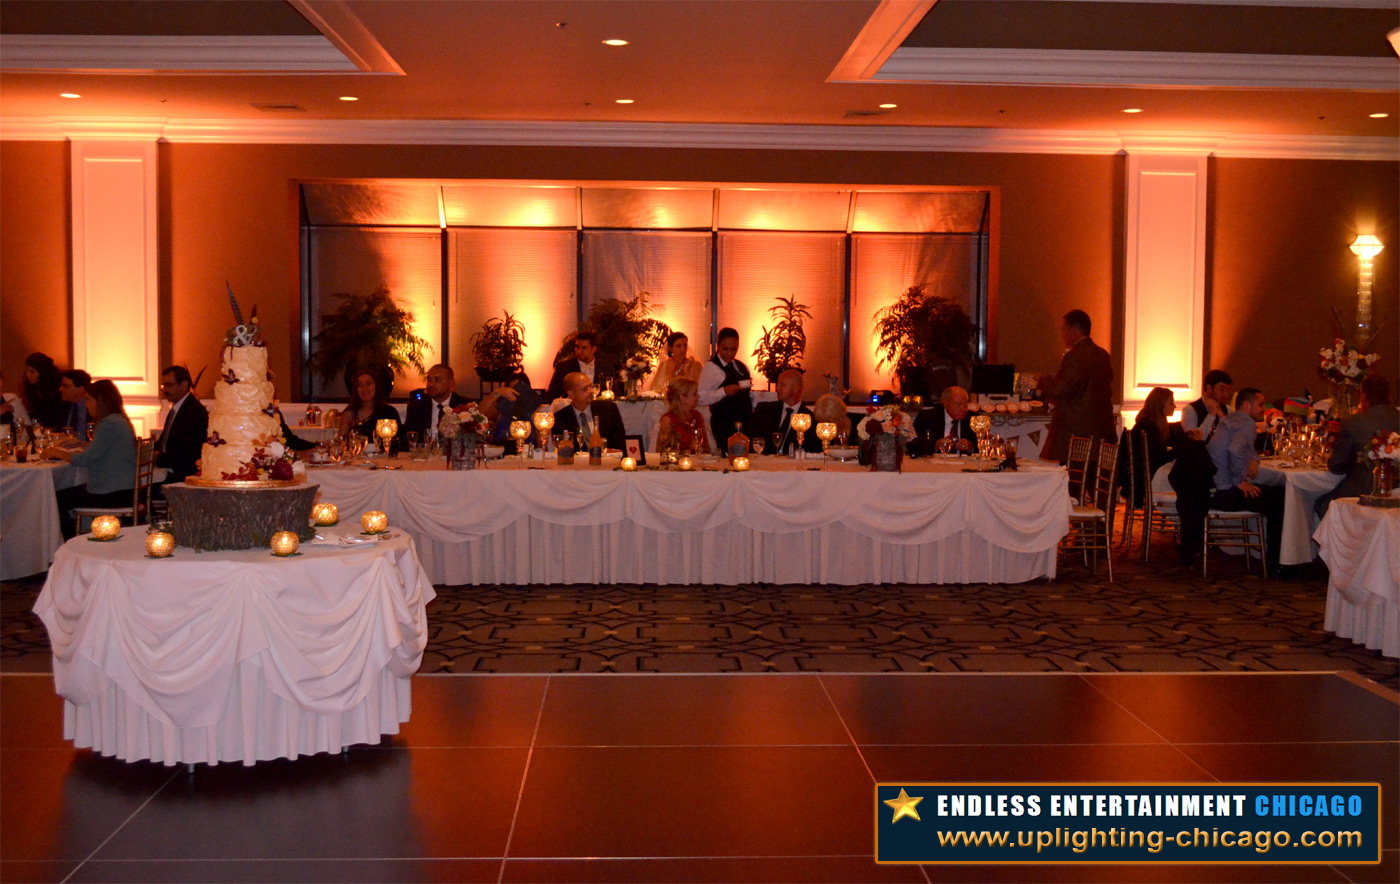 Amber Uplighting by Endless Entertainment Chicago - www.uplighting-chicago.com (